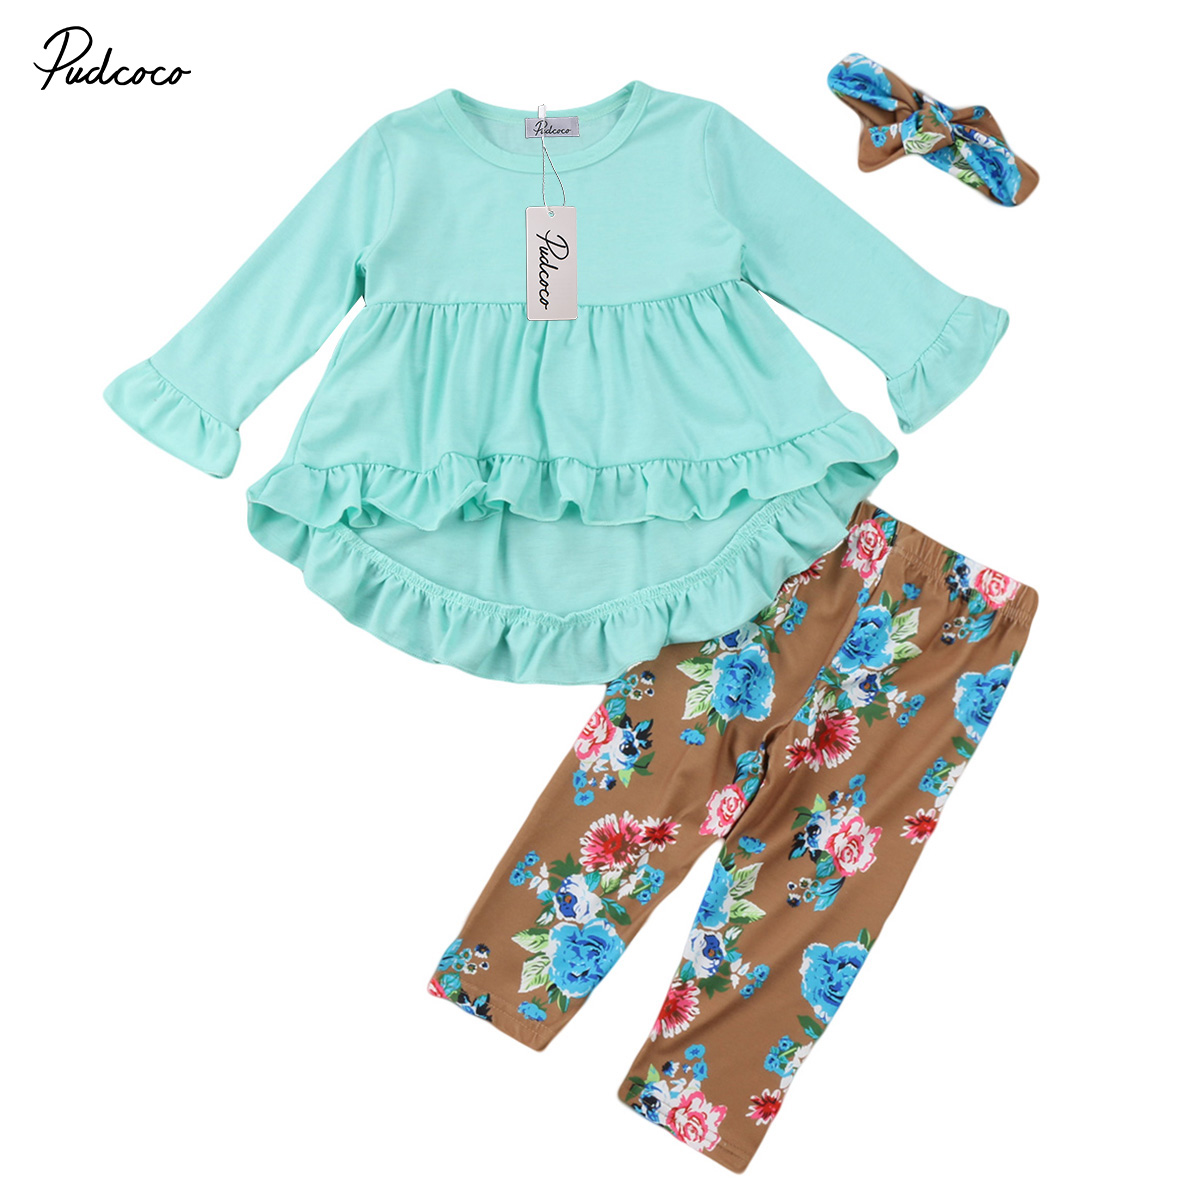 Kid Baby Girl Long Sleeve Top Ruffle Long Sleeve Blouse Floral Leggings Pants Outfit Set Toddler Girls Winter Cotton Clothes infant tops pants love pattern headband baby girl outfit set clothing 3pcs kid children baby girls clothes long sleeve